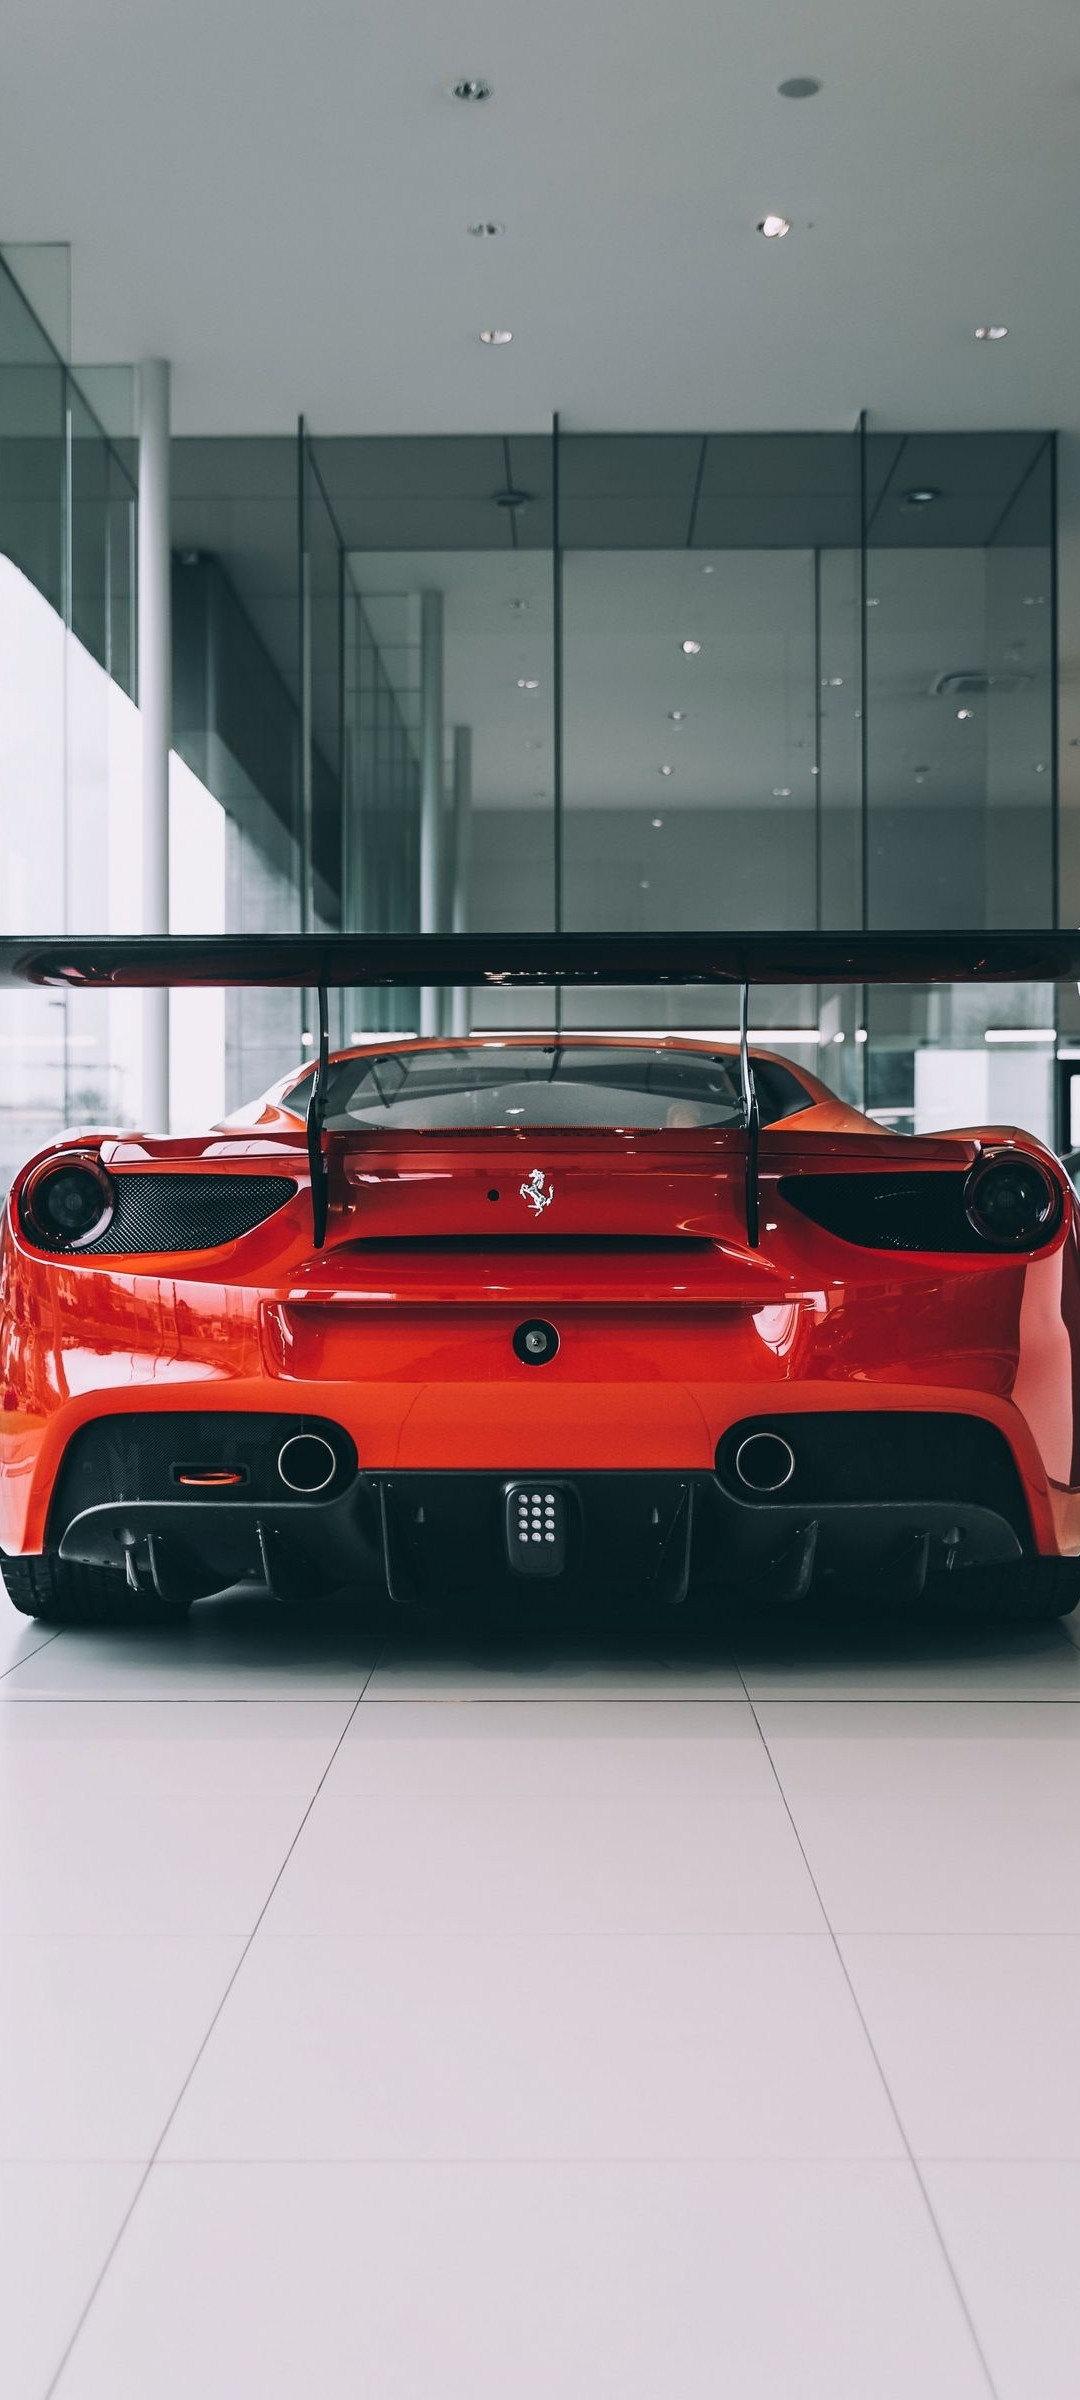 Red Ferrari Wallpaper